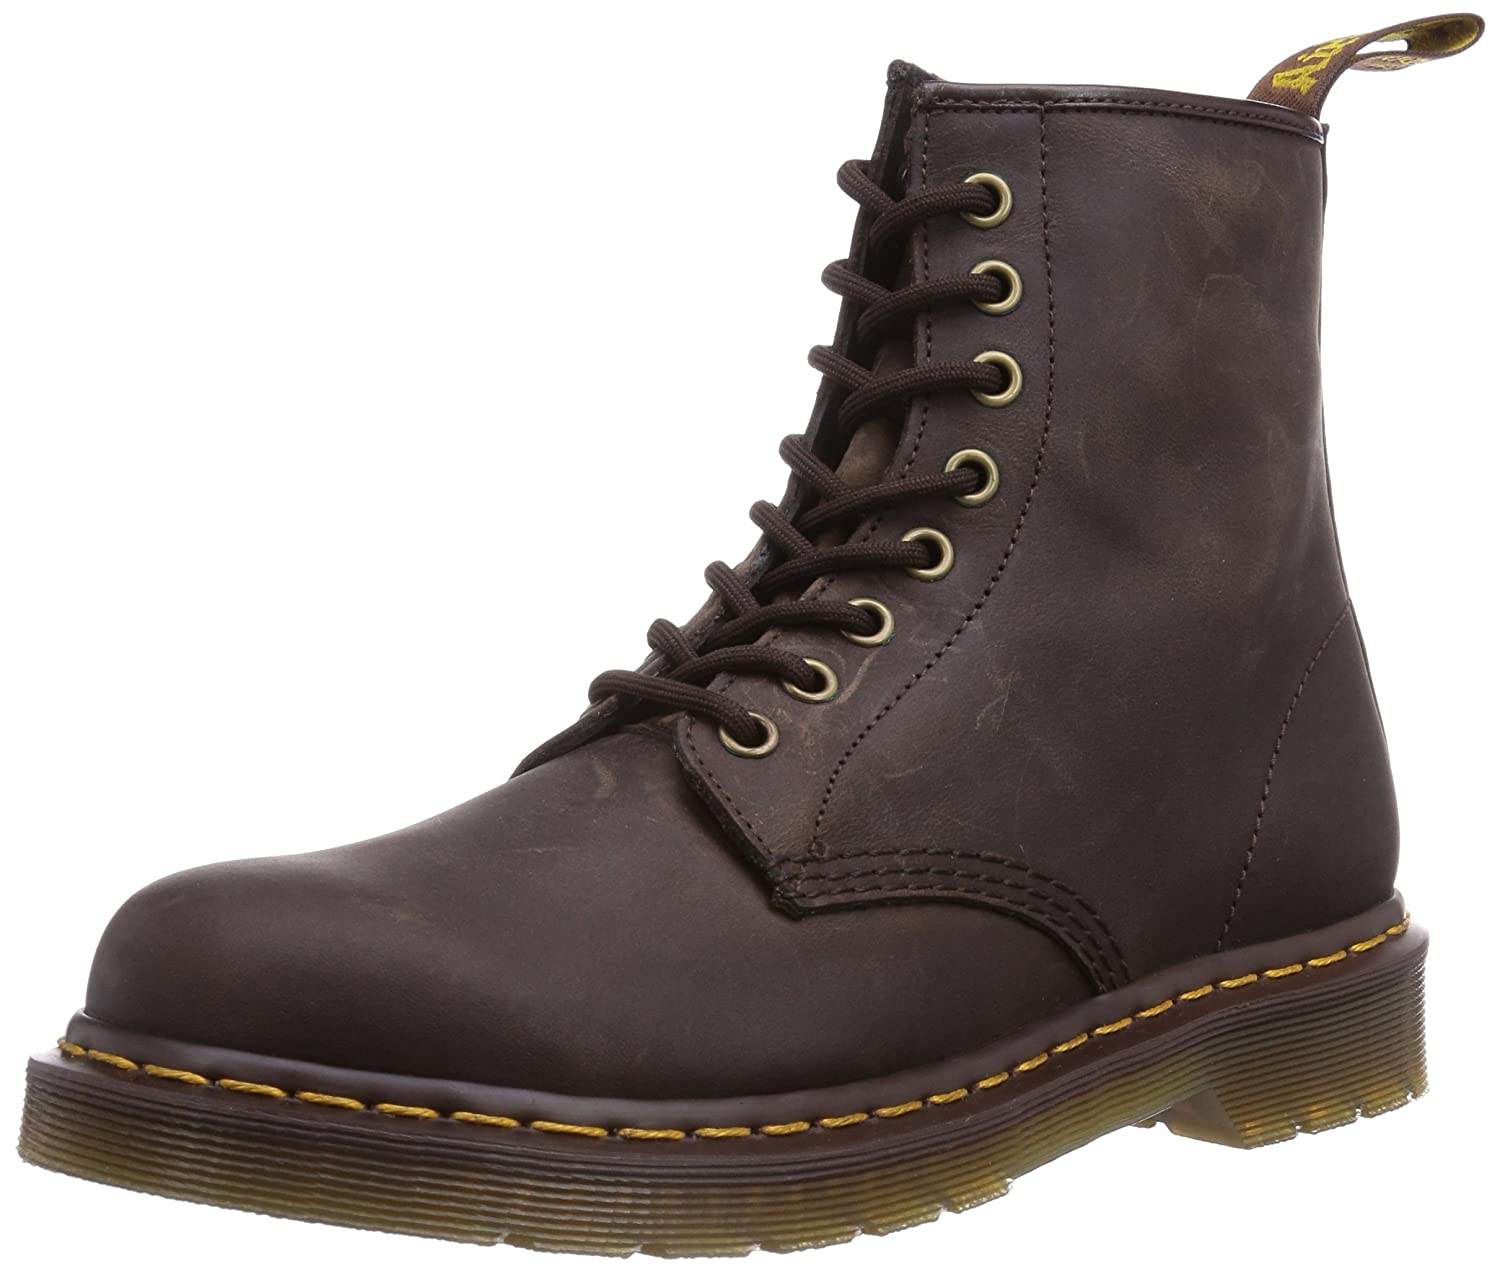 Dr. Martens Men's 1460 Combat Boot, 8.5 B(M) US Women/7.5 D(M) US Men B001N1OFIS 8 M UK (9 US)|Gaucho Crazy Horse